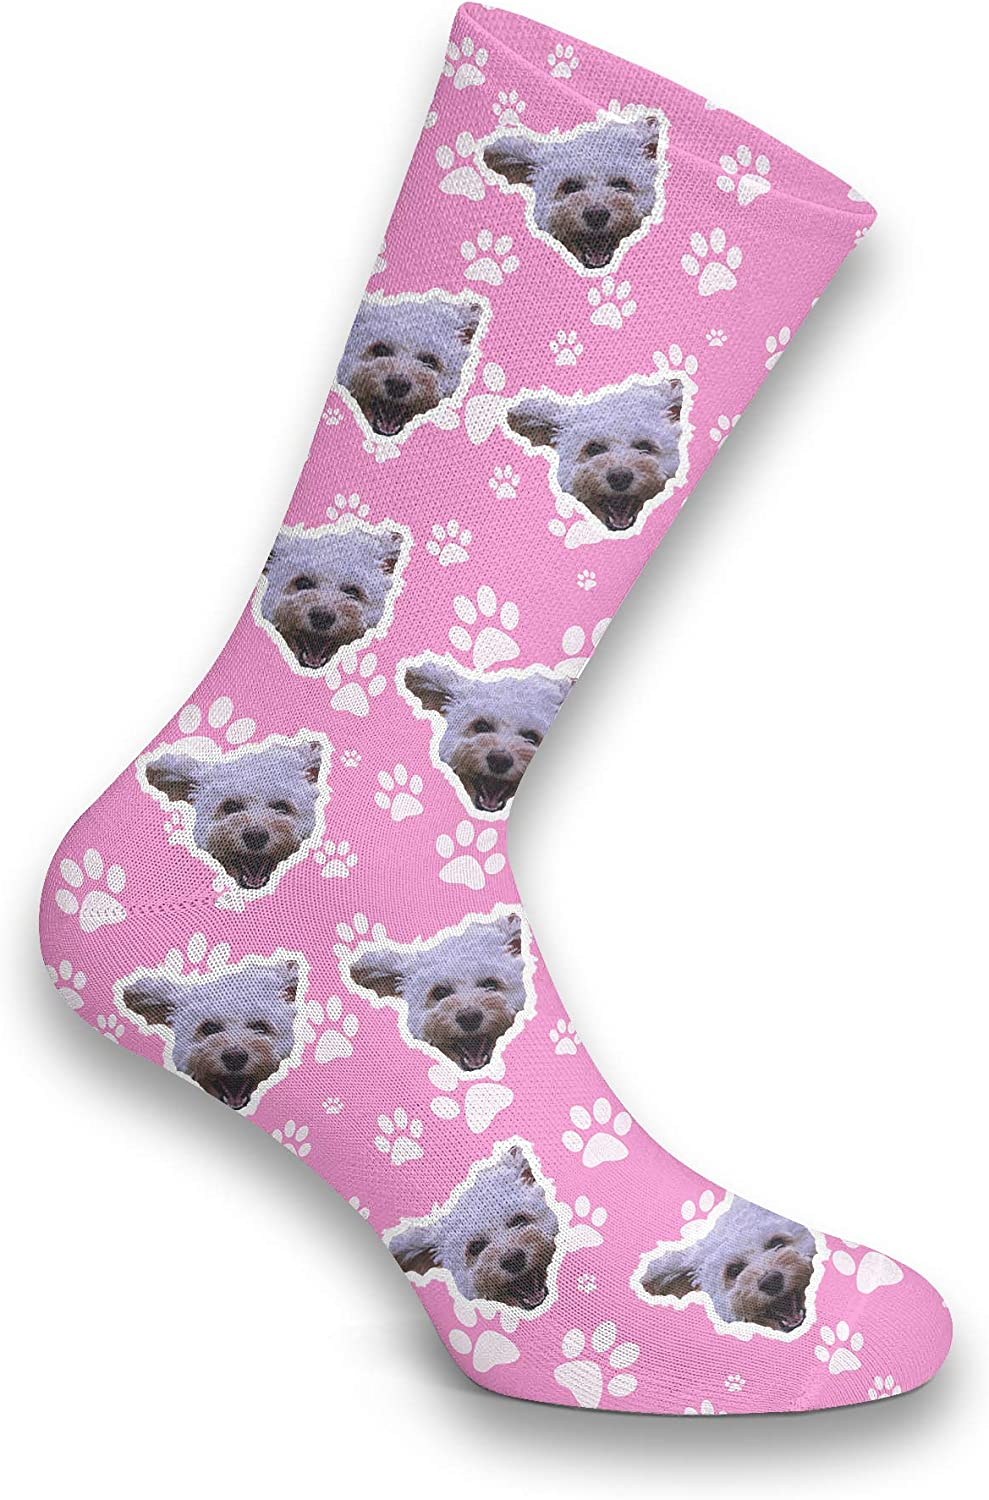 Add Your Pets Face Custom Picture Socks Personalised Pet Face Photo Socks Dog Cat Add Any Pet